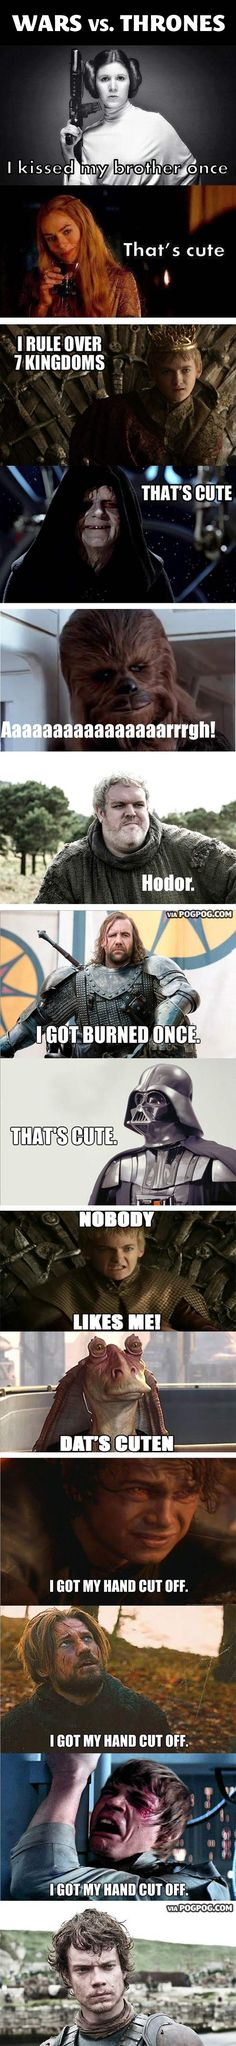 Star Wars vs. Game of Thrones…